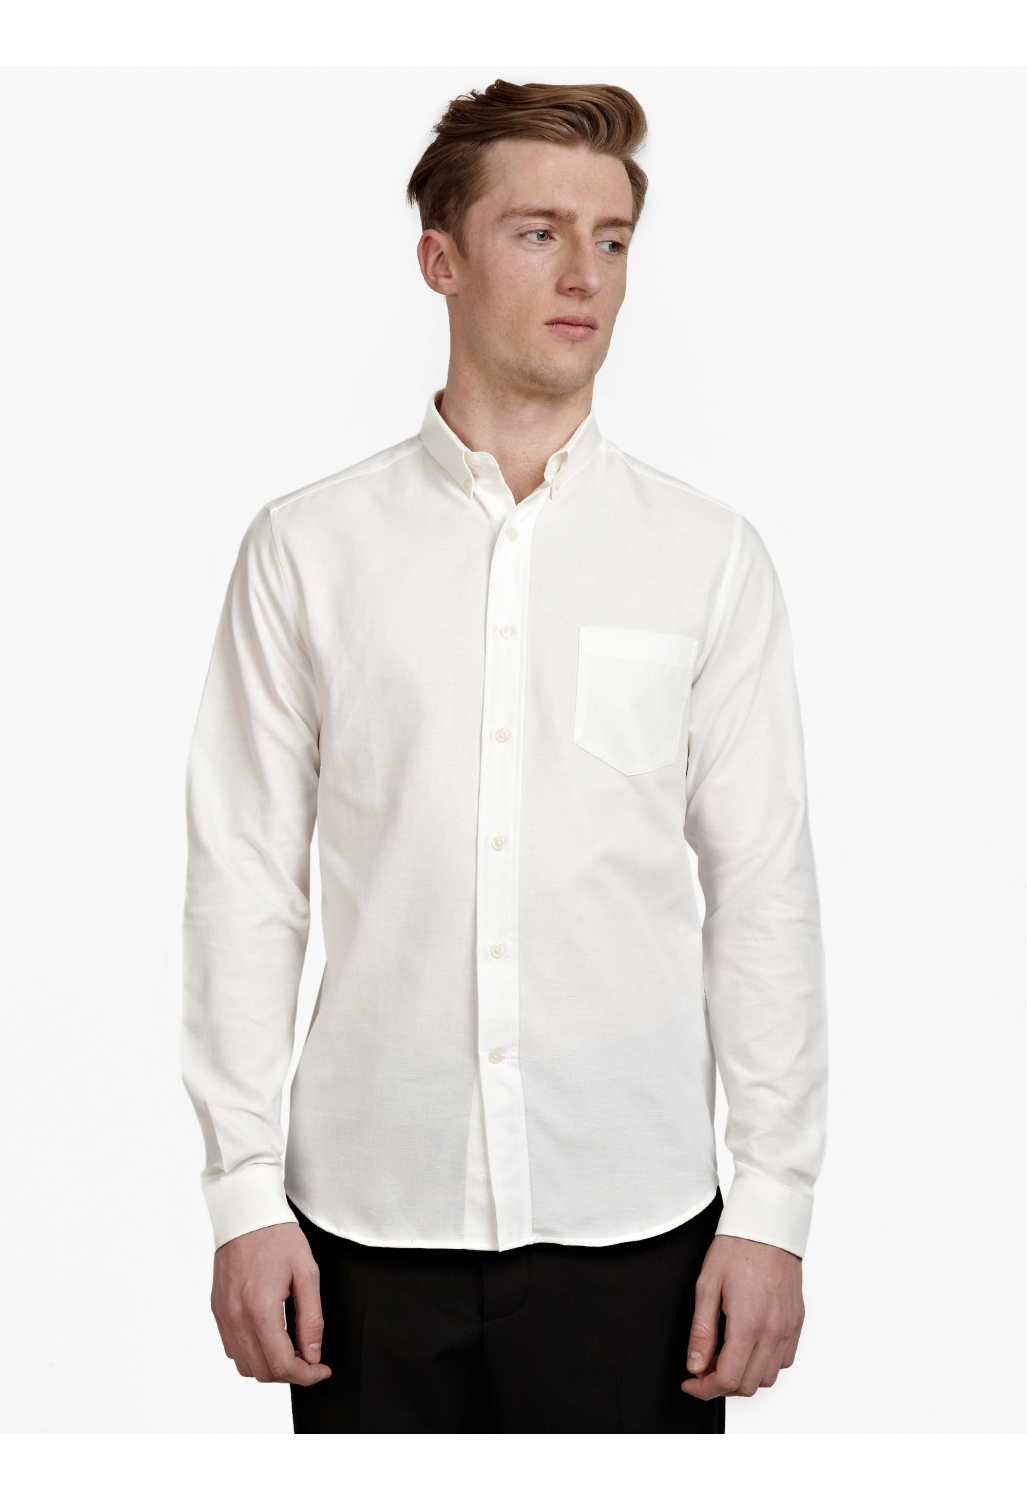 Ami men 39 s white button down shirt in white for men lyst for Mens white button down dress shirts